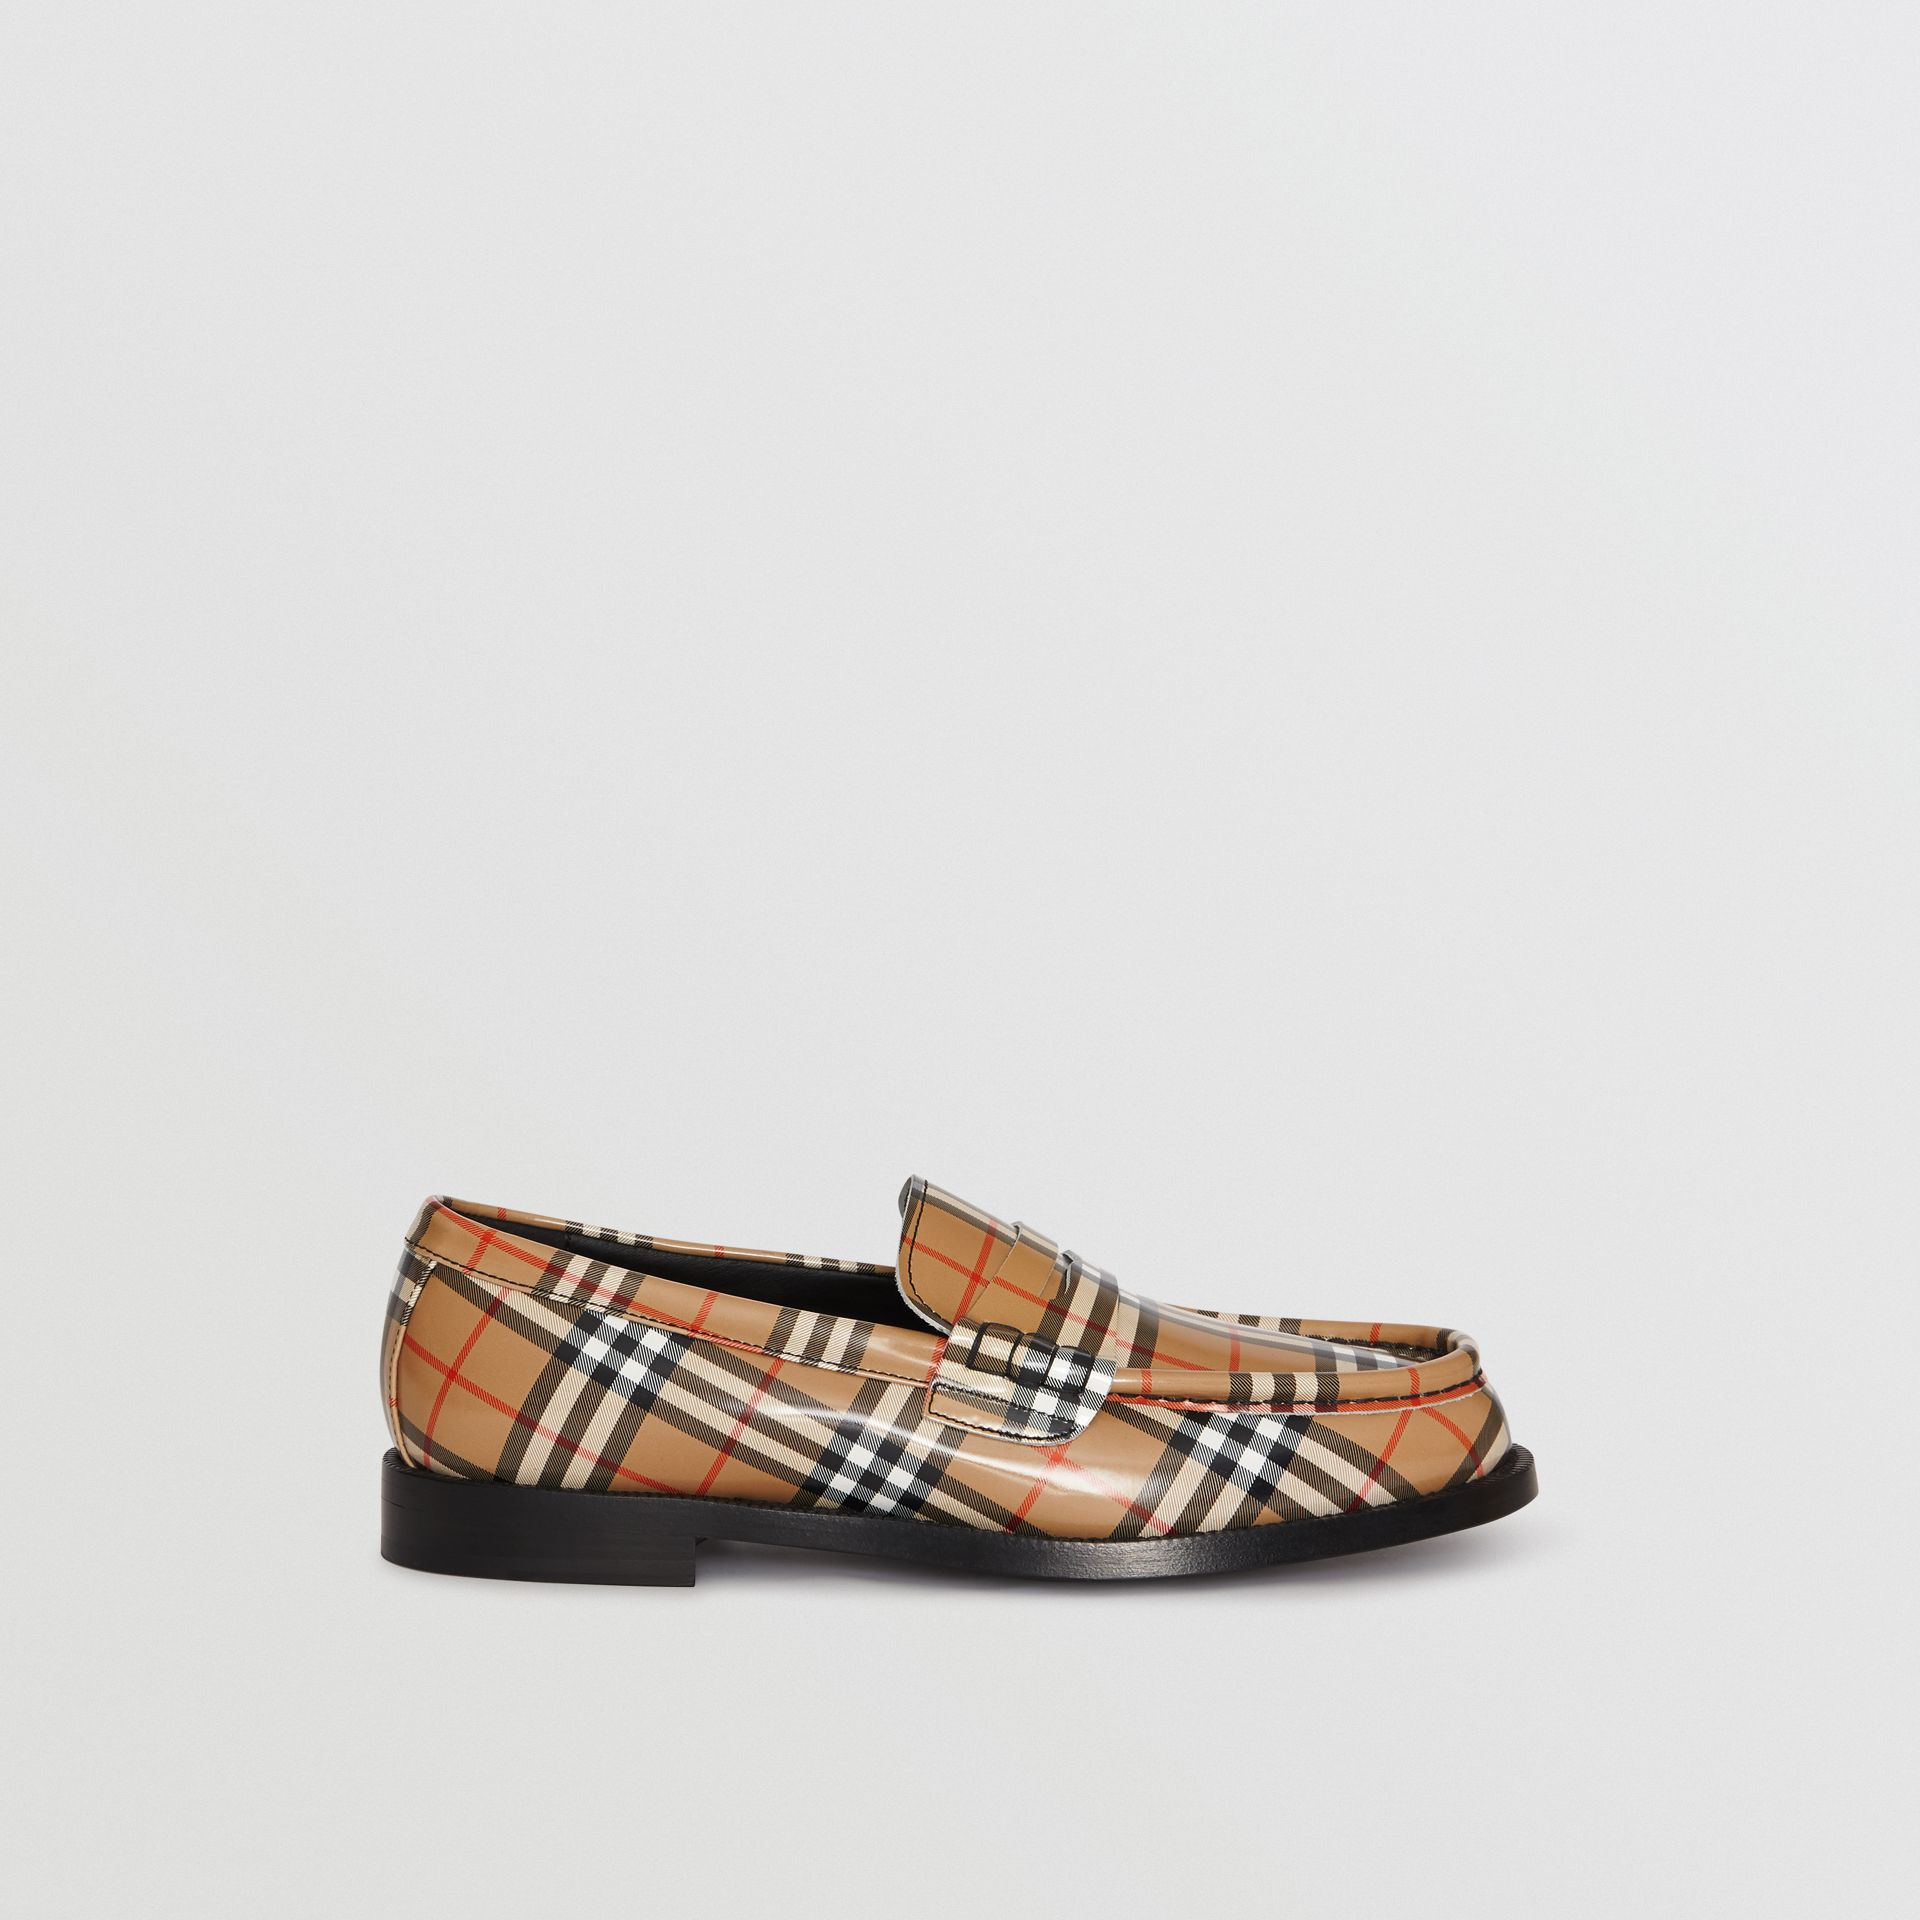 Gosha x Burberry Check Leather Loafers in Antique Yellow - Men | Burberry Australia - gallery image 7